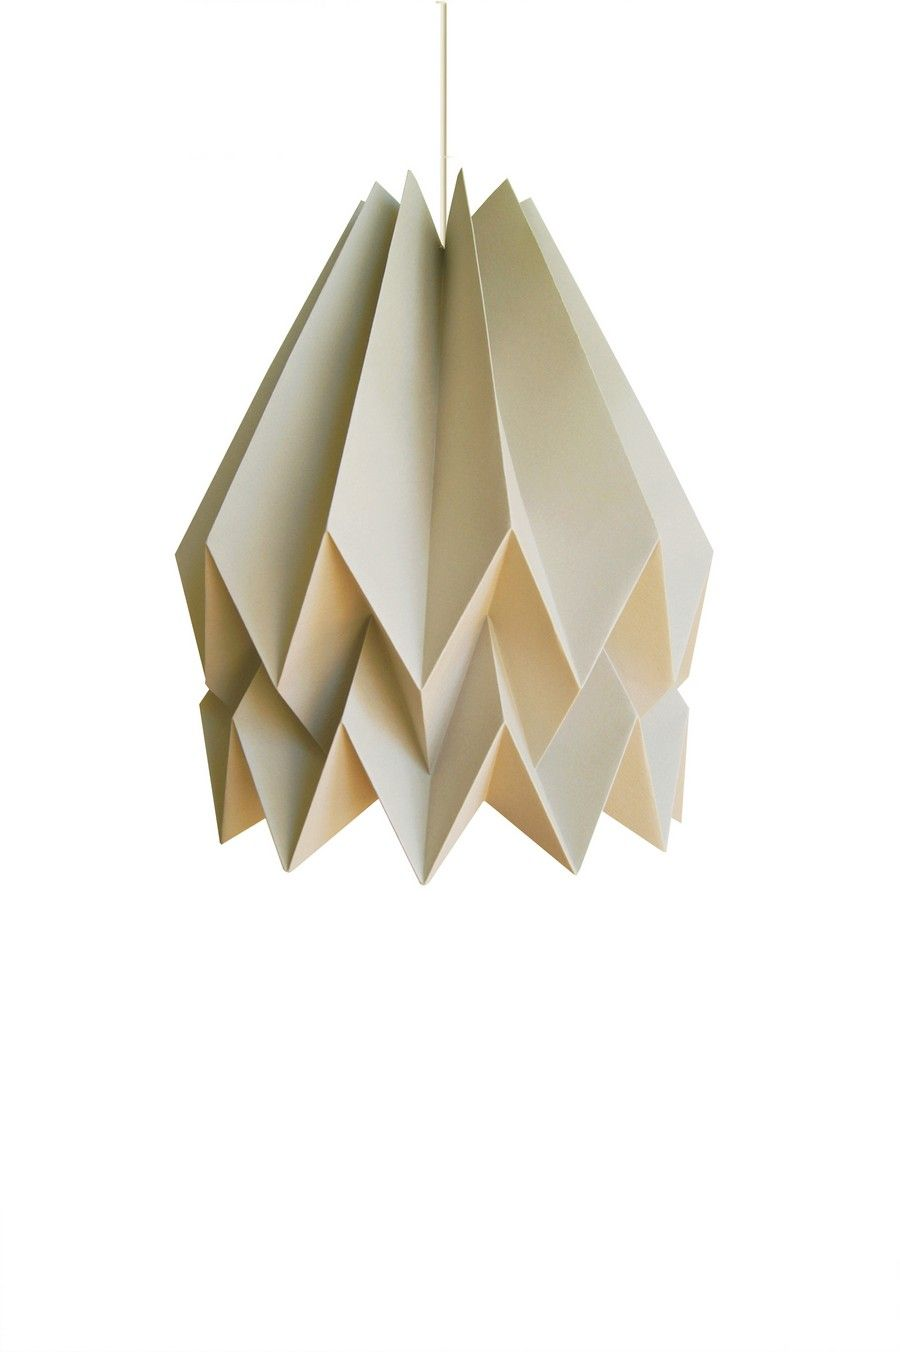 Handcrafted Origami Inspired Lampshade Adding A Stylish Touch